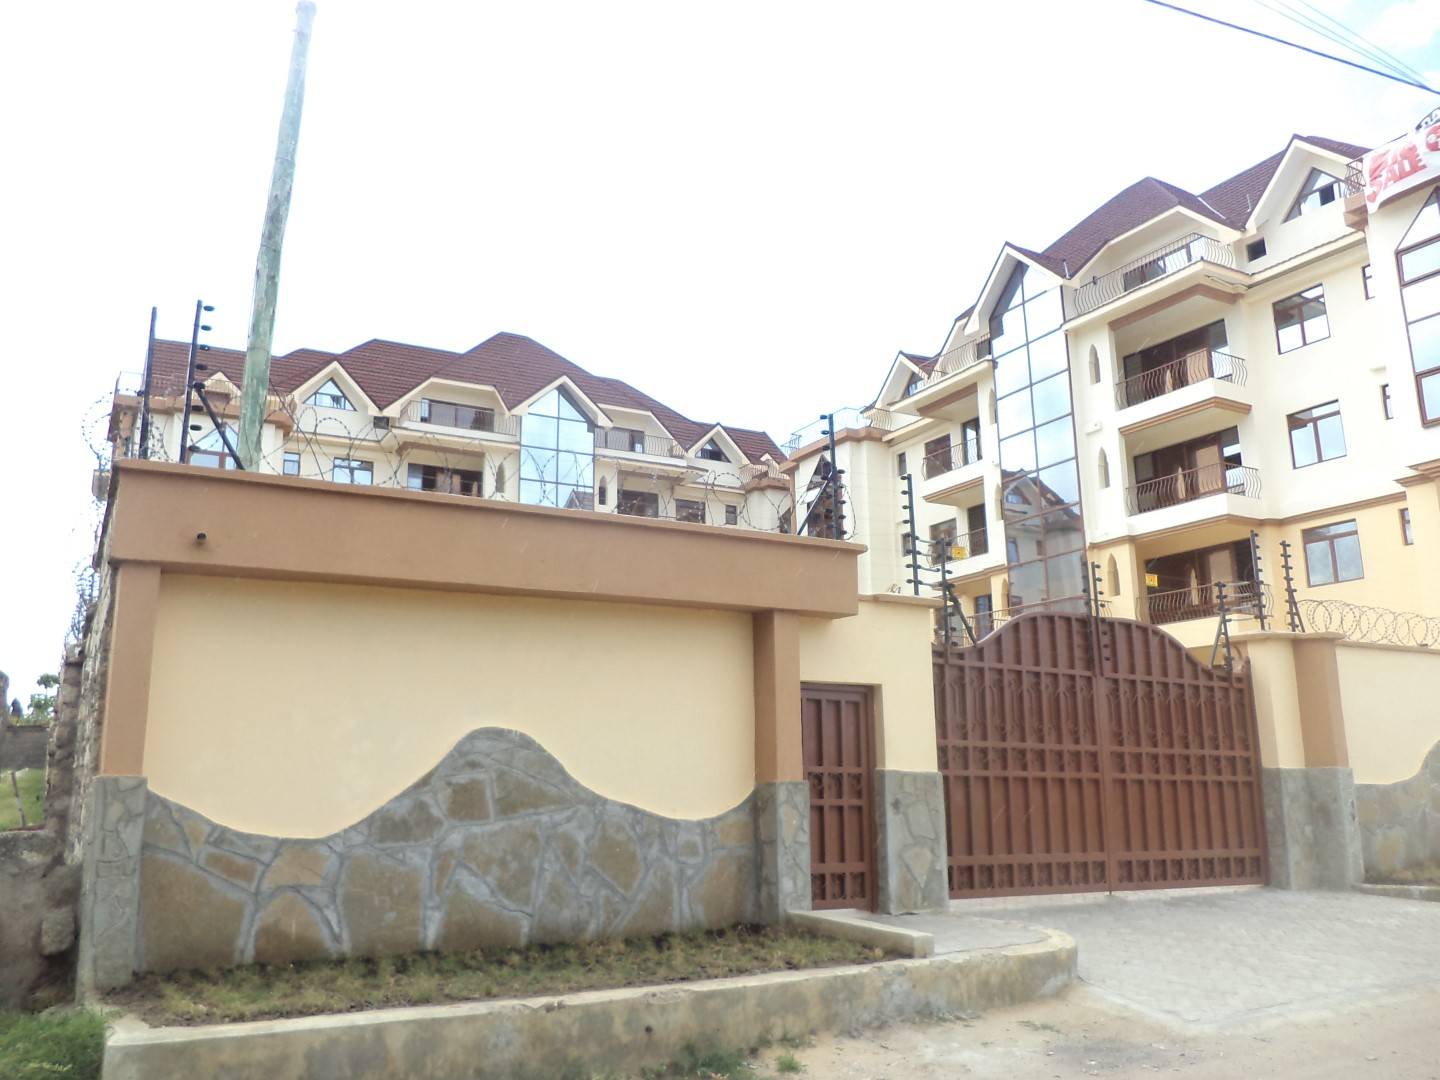 Executive 3 bedroom modern rental apartment with pool and jacuzzi in Nyali